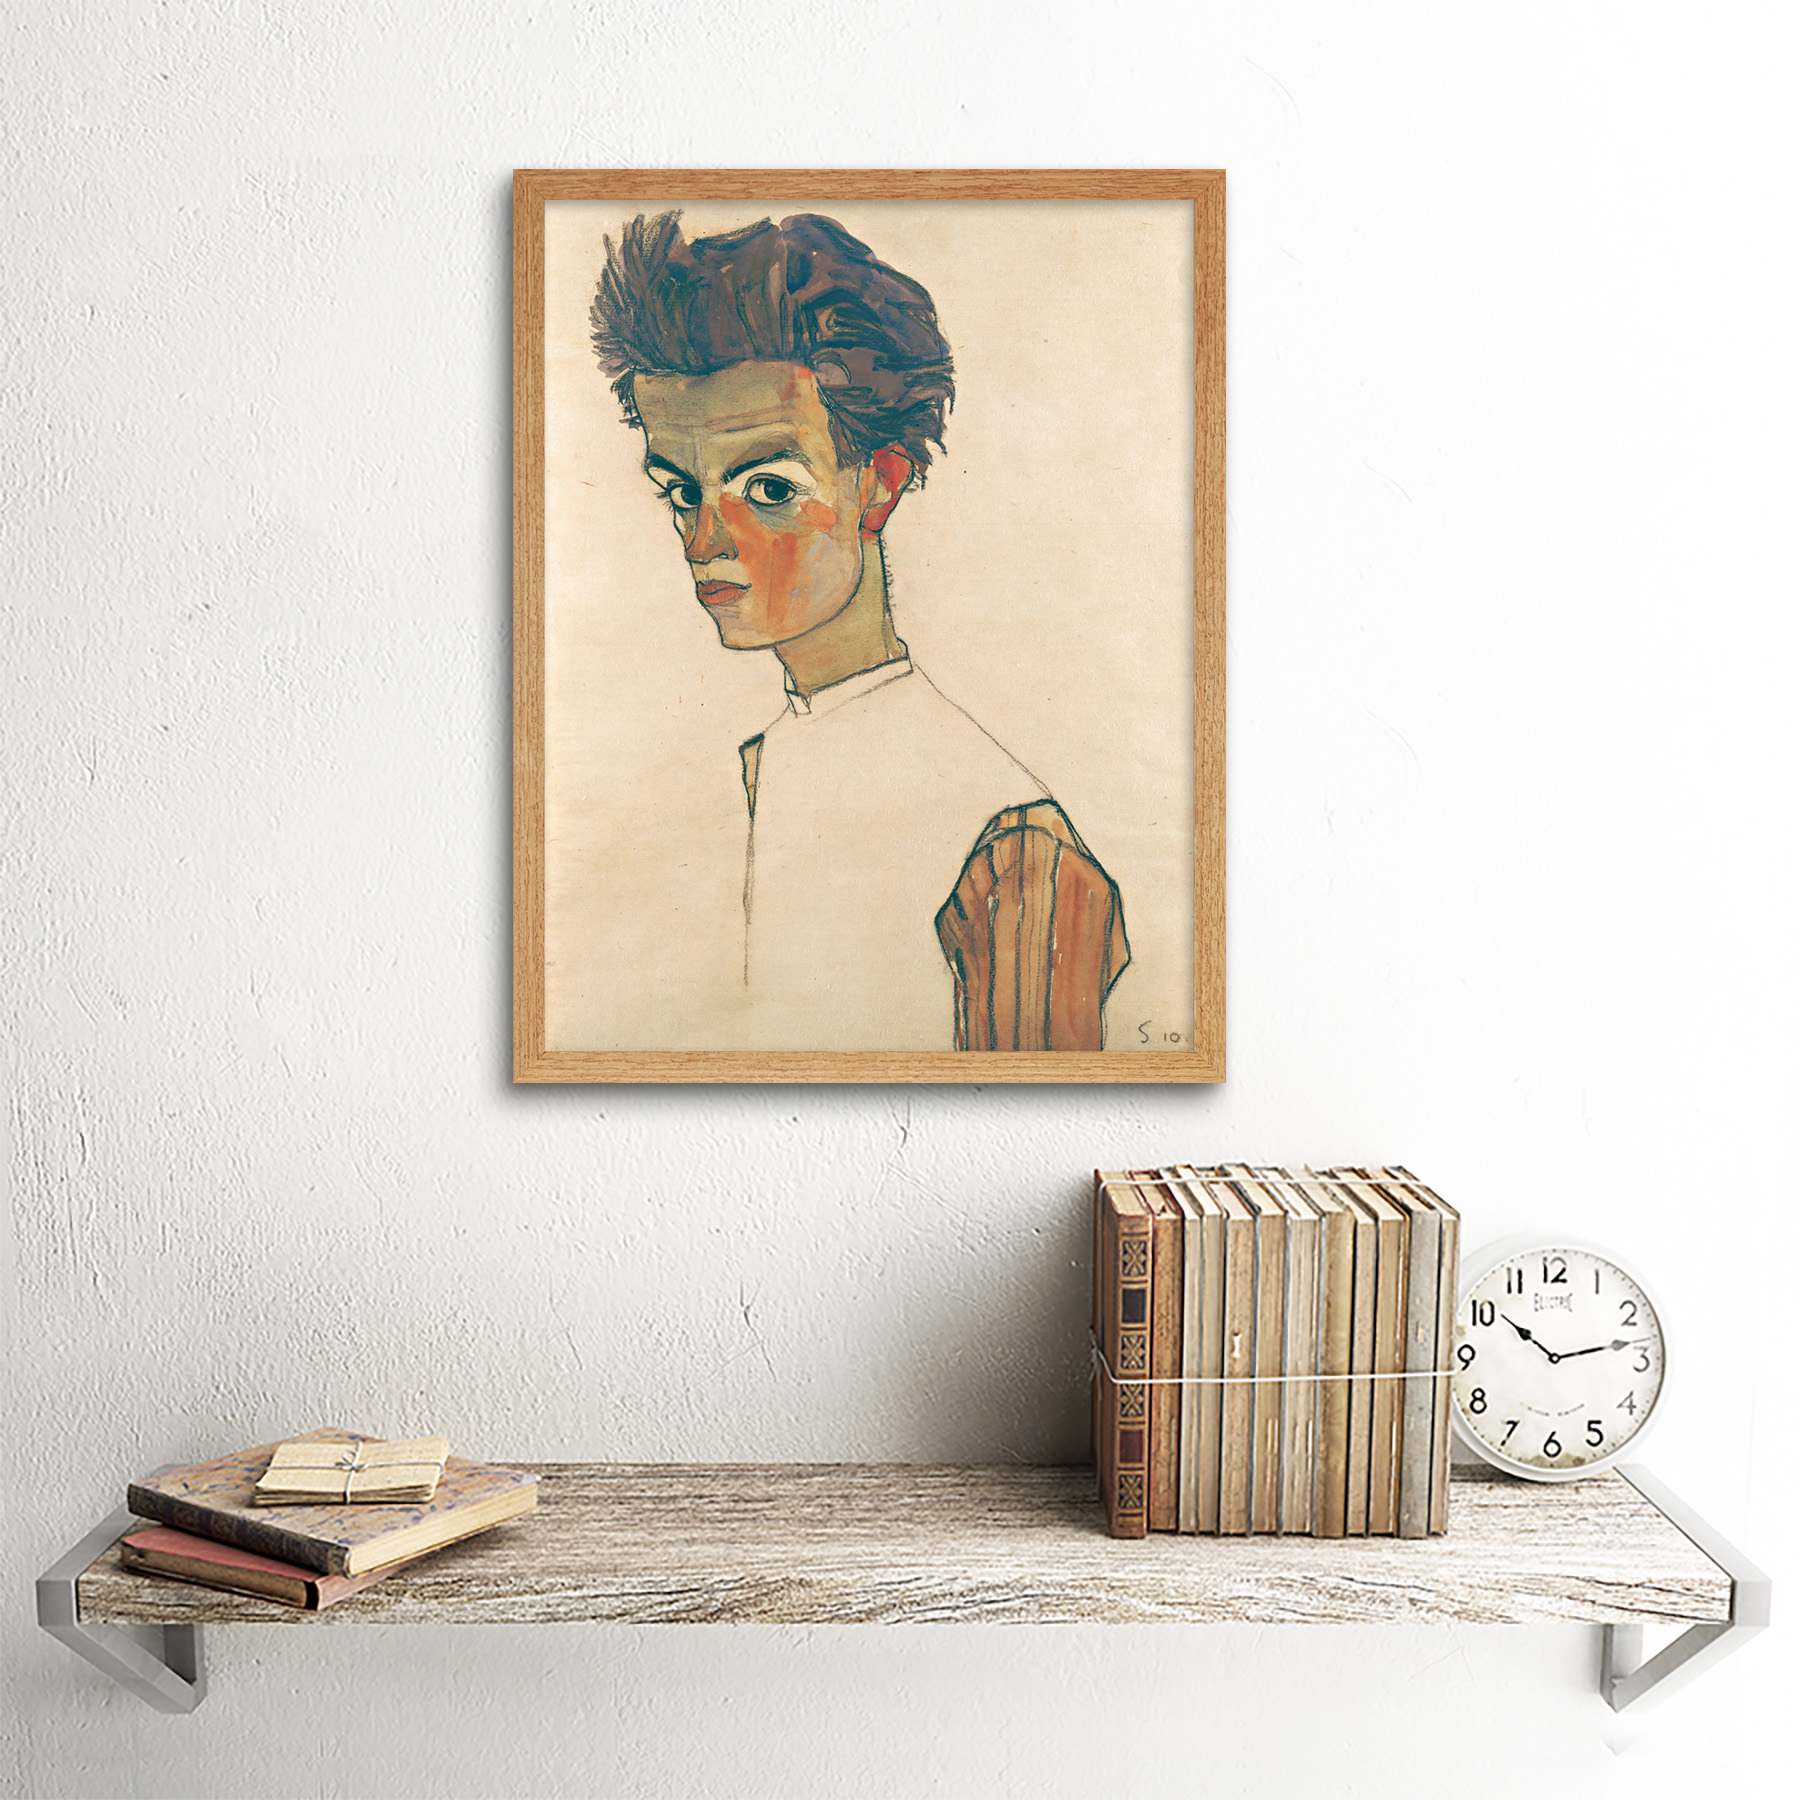 thumbnail 13 - Egon-Schiele-Self-Portrait-With-Striped-Shirt-Art-Print-Framed-12x16